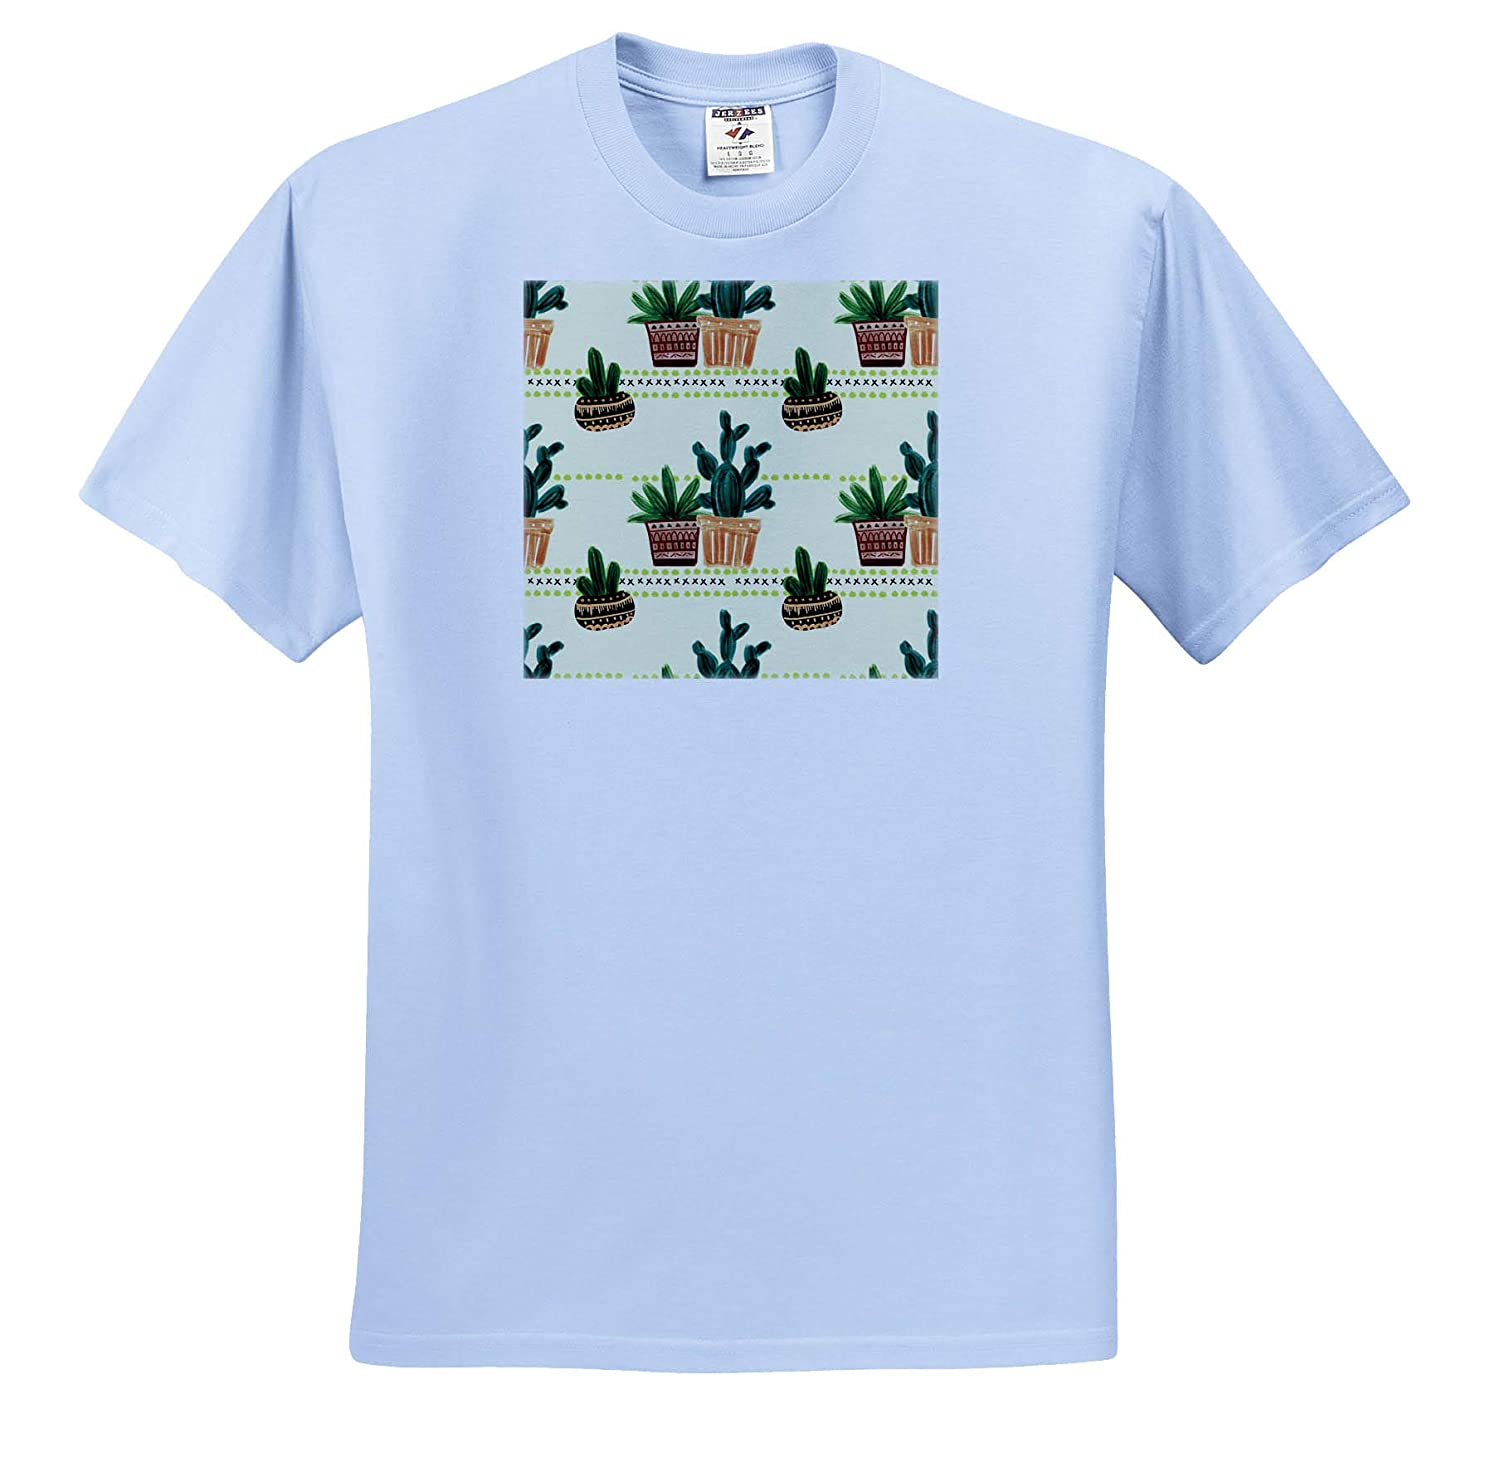 ts/_317656 3dRose Anne Marie Baugh Cute Image of Watercolor Cactus in Pots Pattern Adult T-Shirt XL Patterns